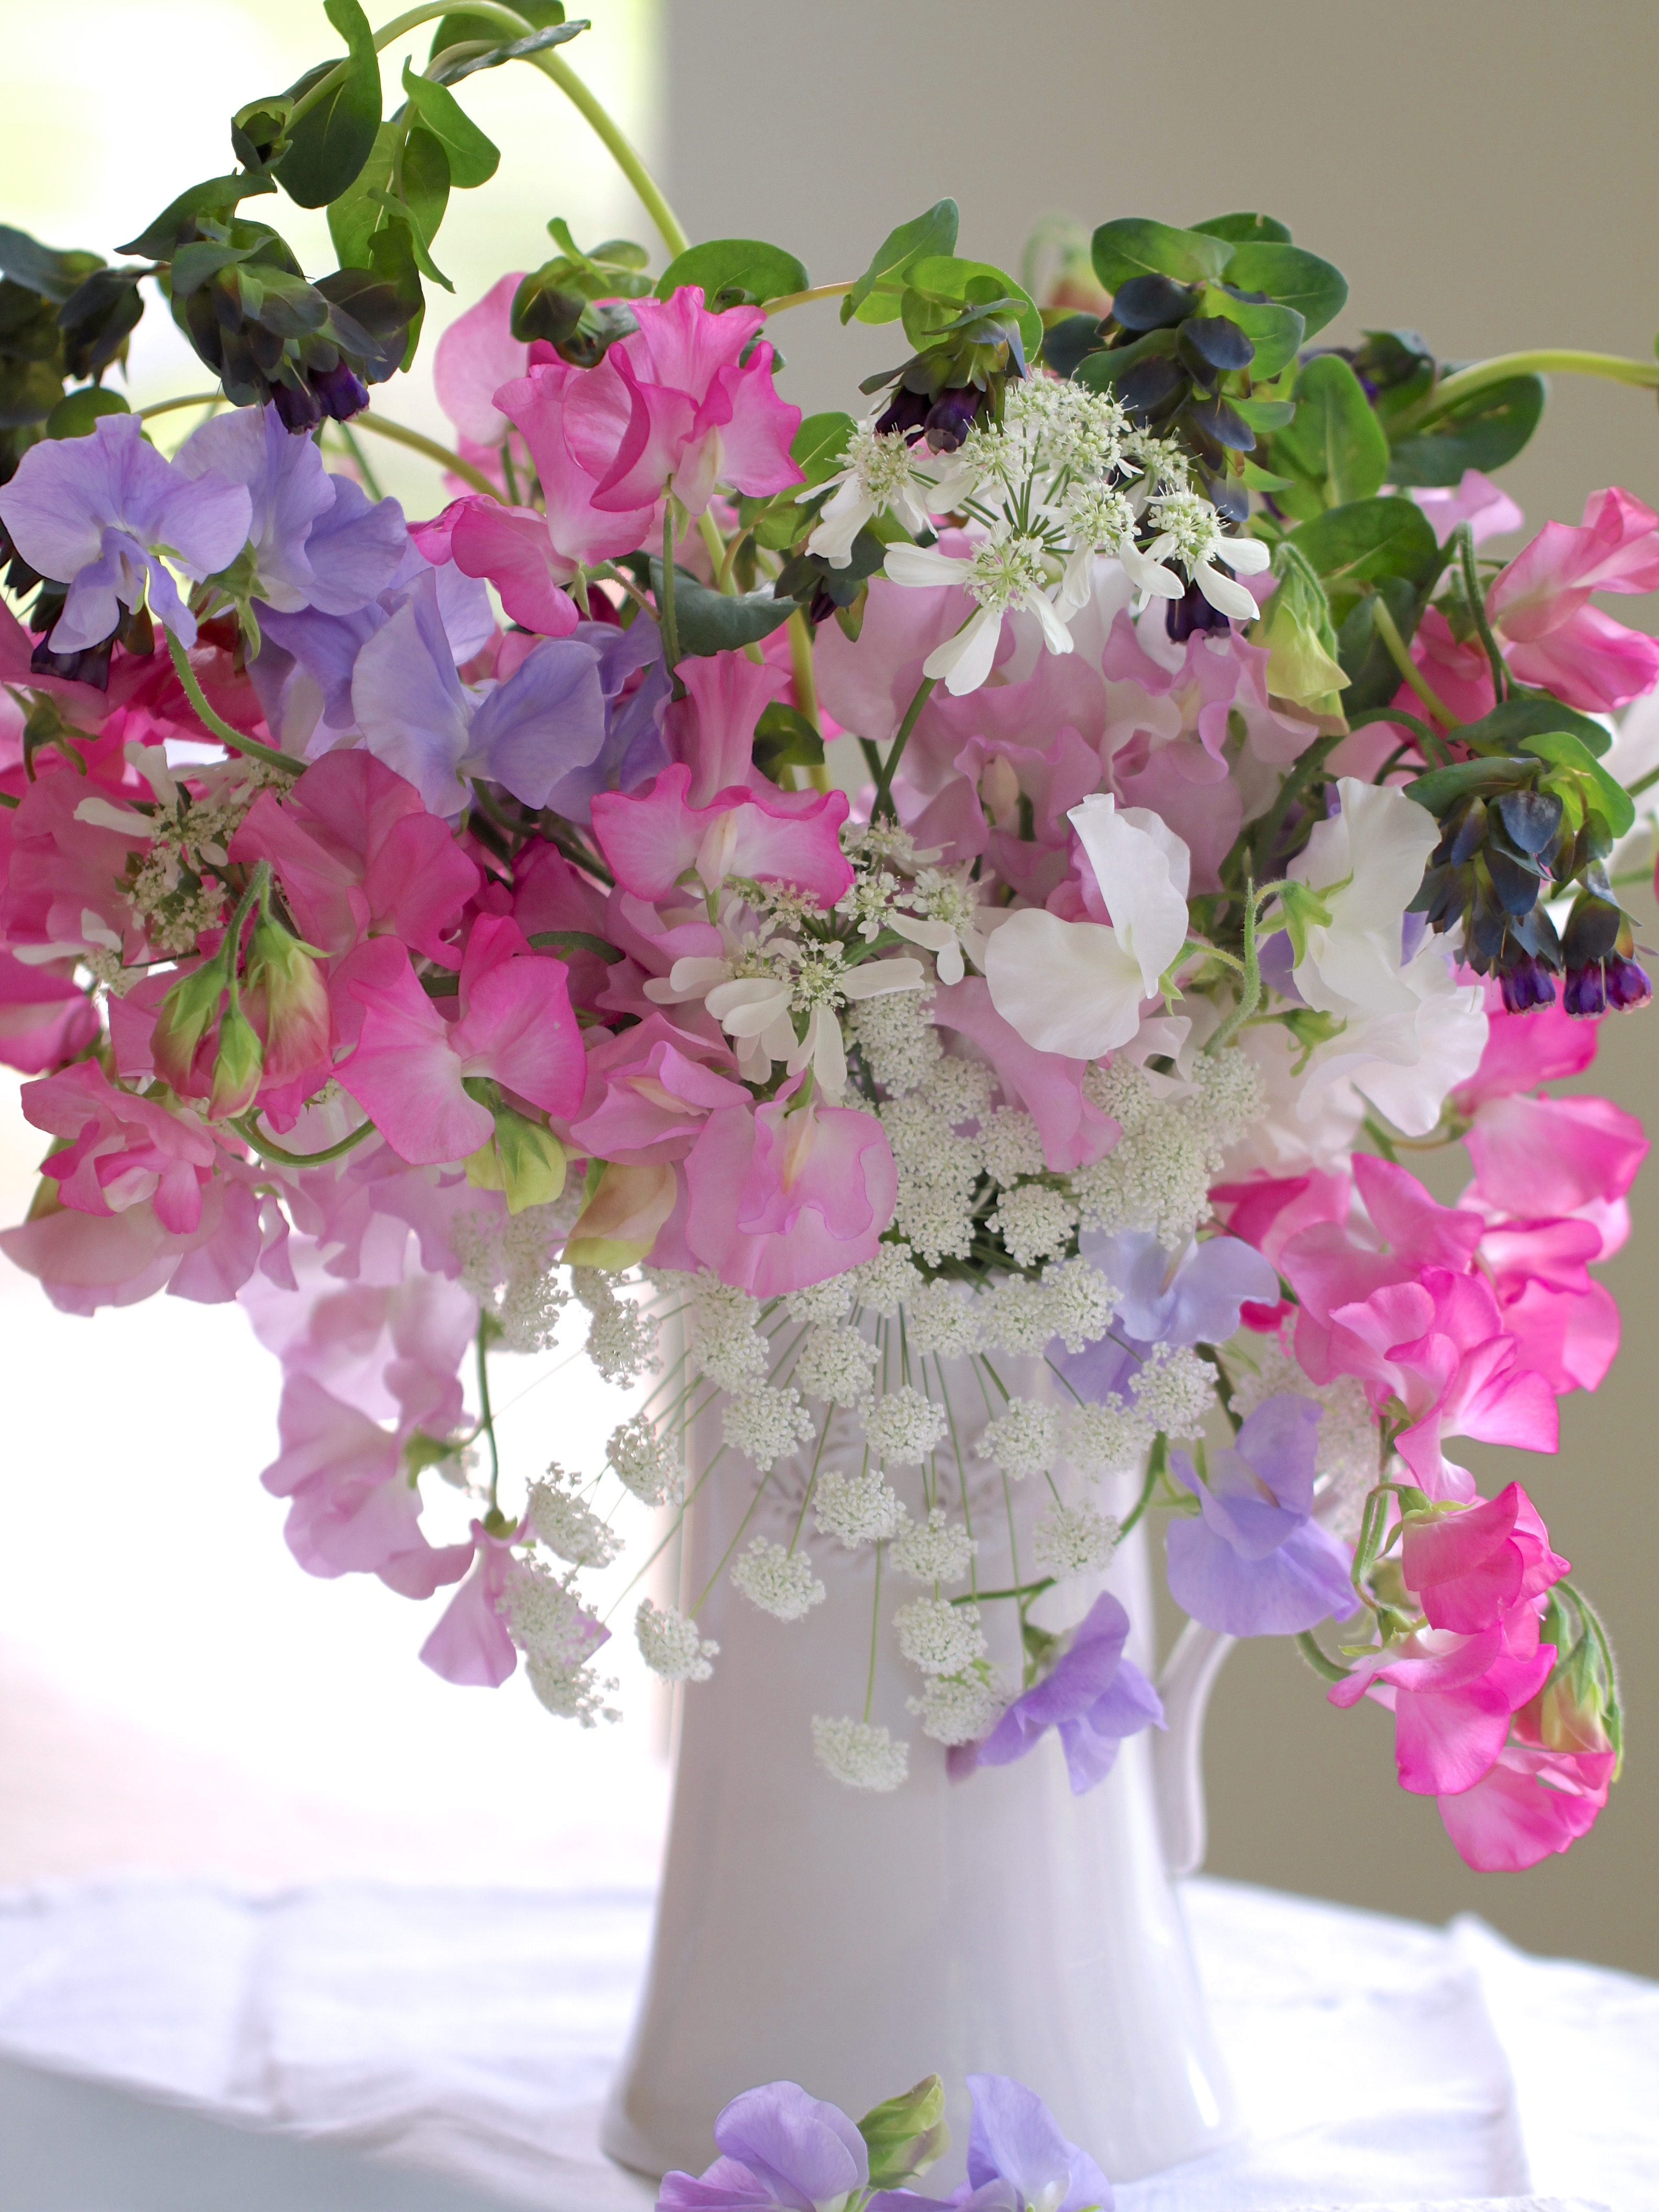 In a vase on monday a sweet pea symphonyindulging floral passions sweet pea vase arrangement reviewsmspy